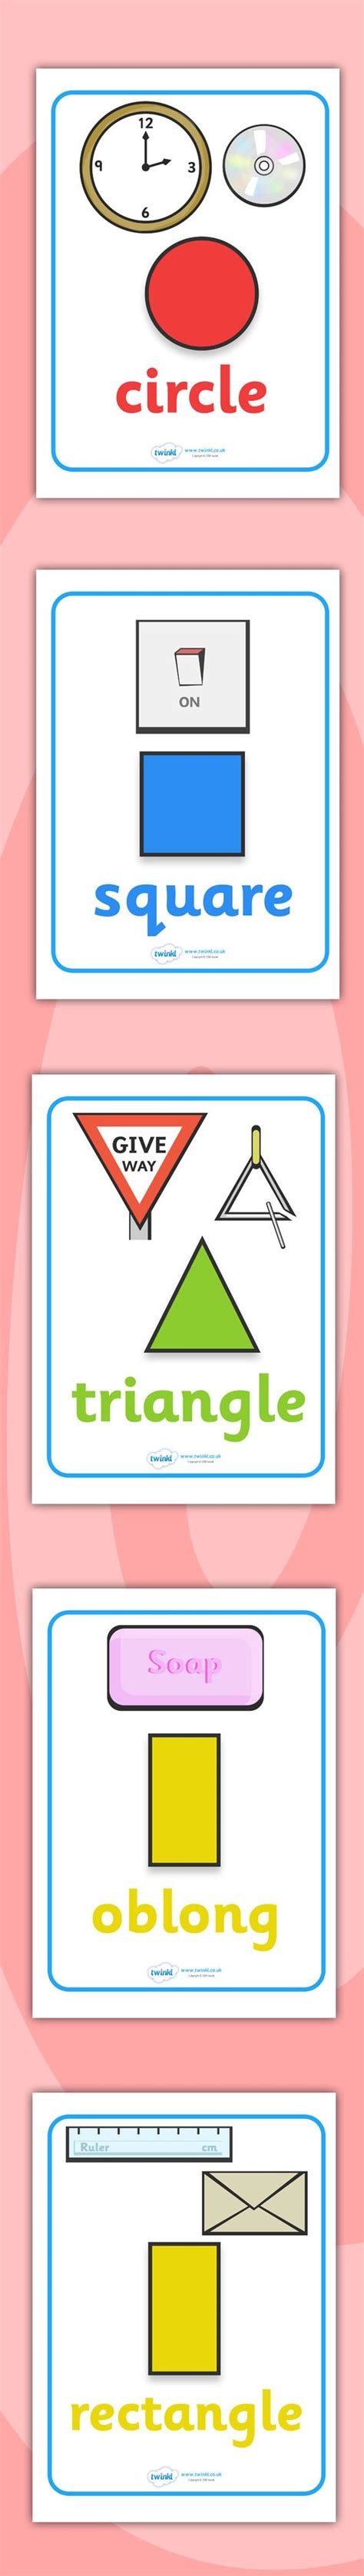 printable shapes for classroom display pinterest the world s catalog of ideas